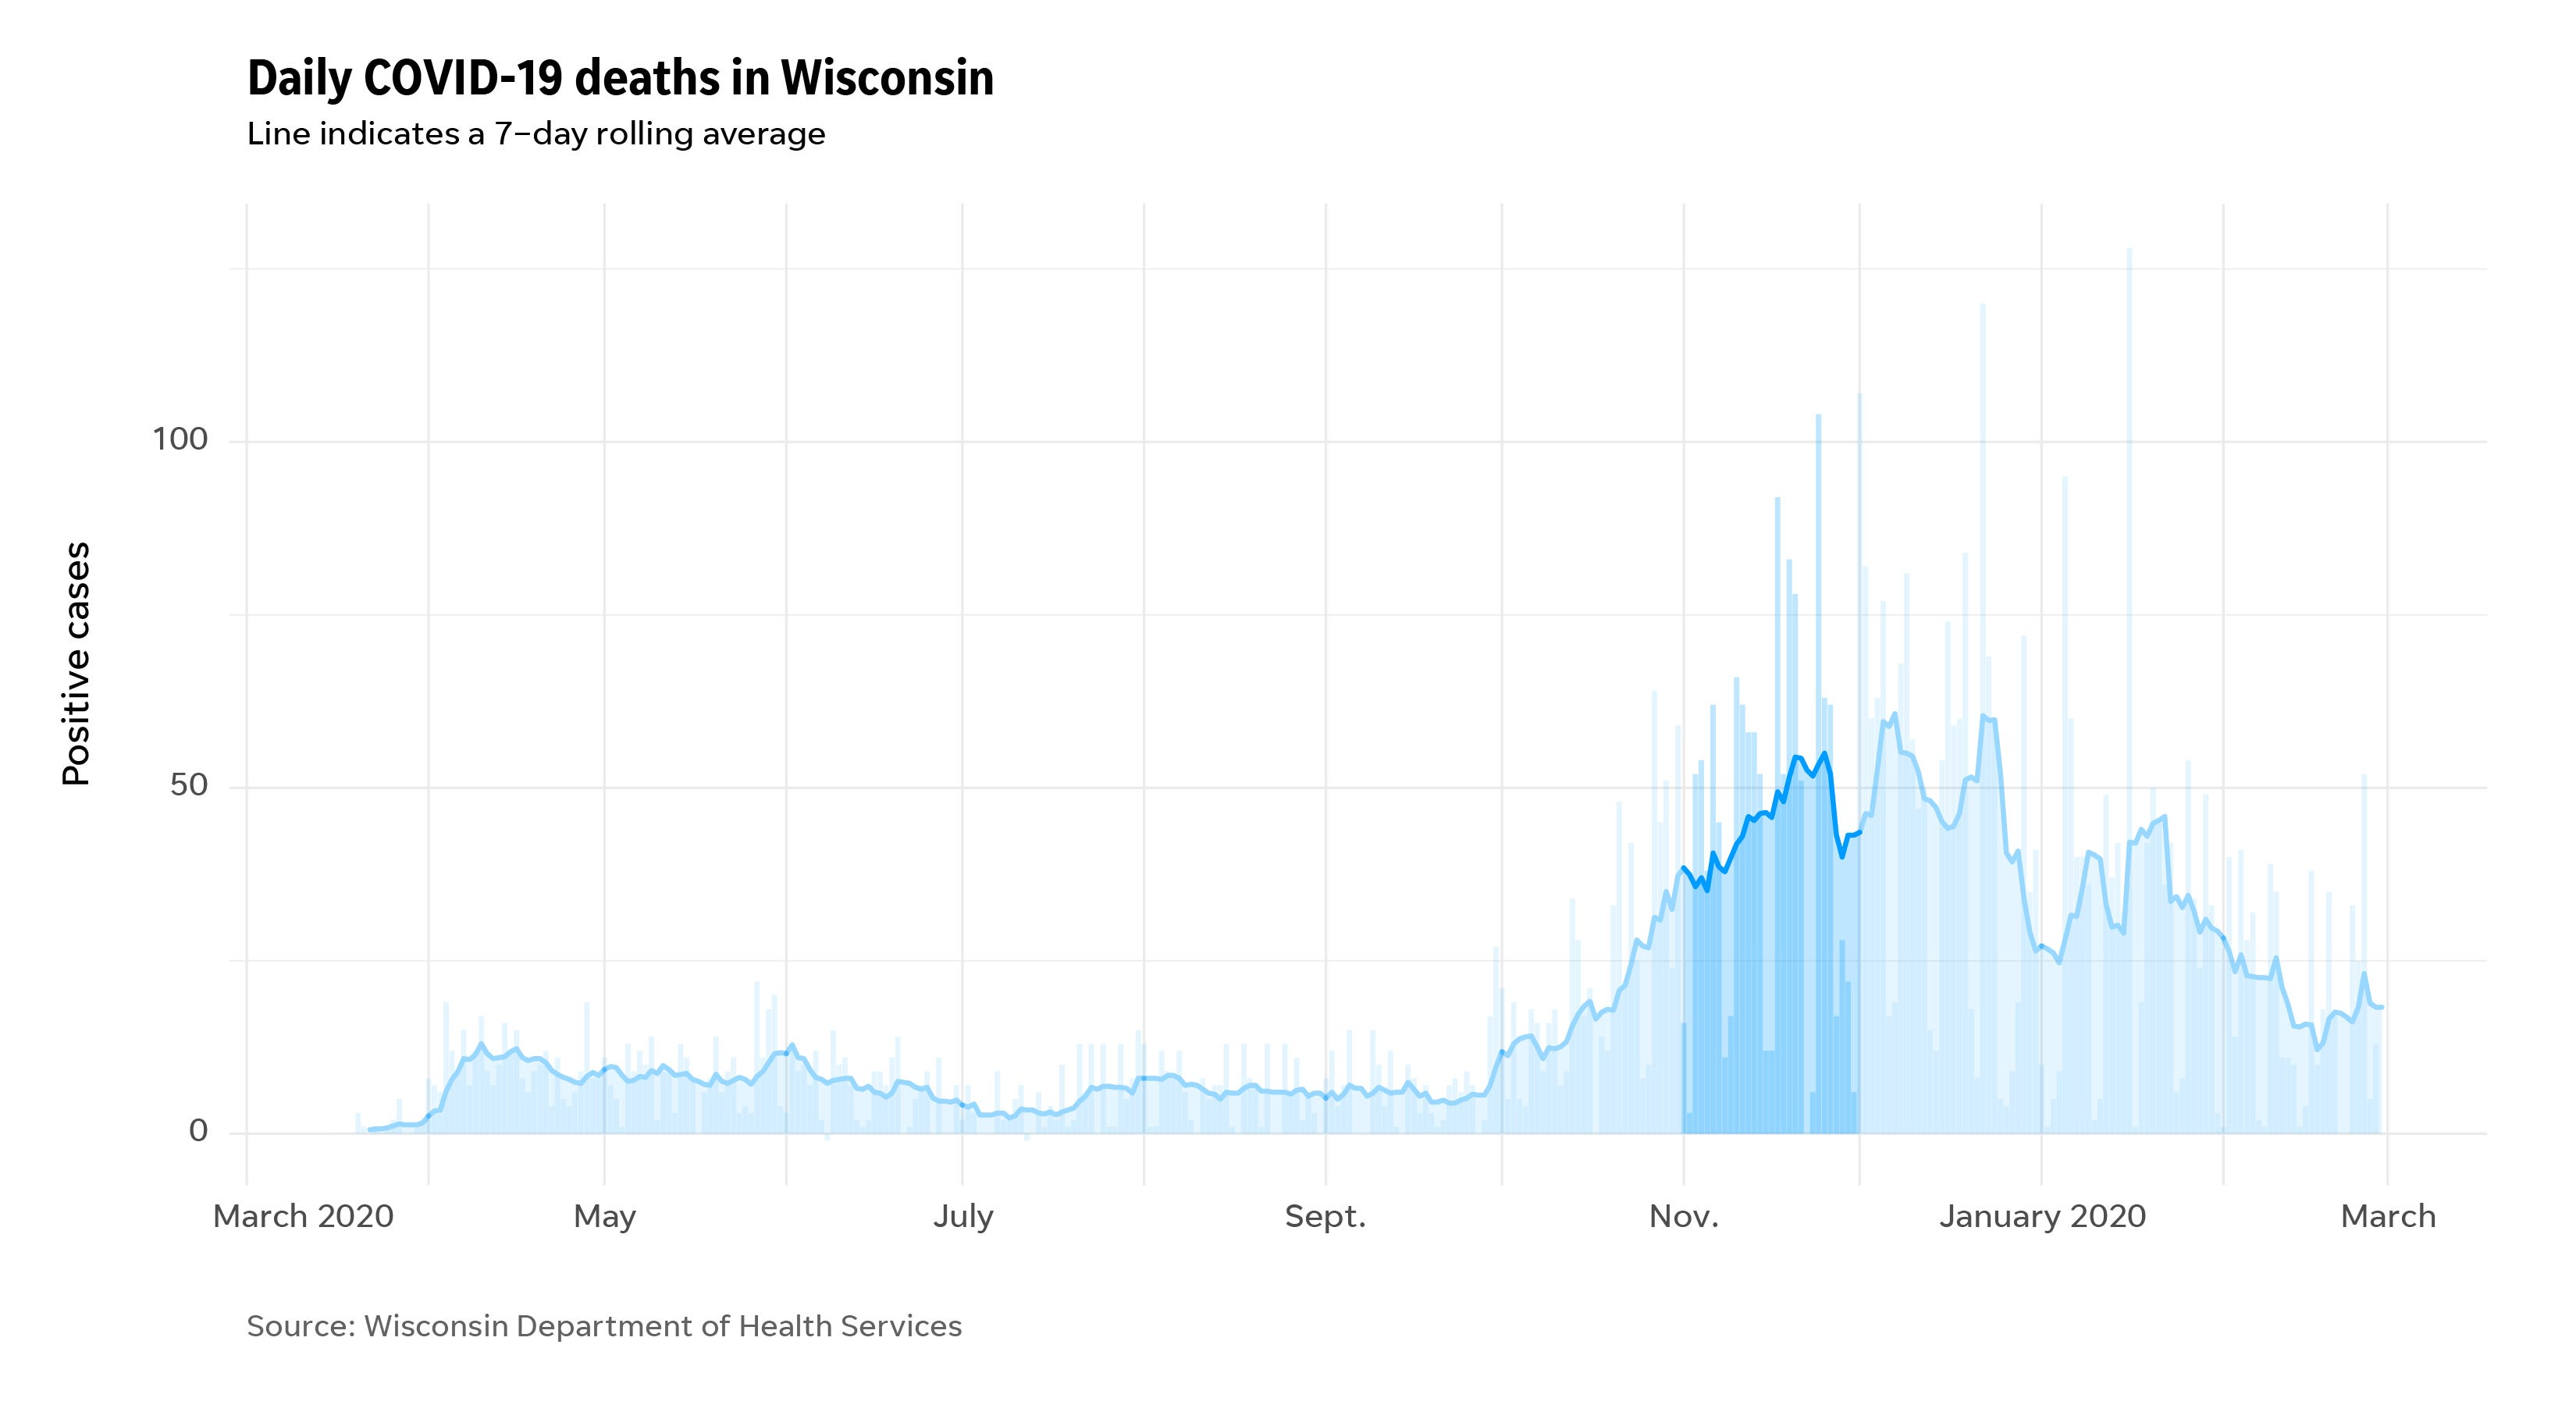 Deaths in Wisconsin during the COVID-19 pandemic highlighting the month of November.